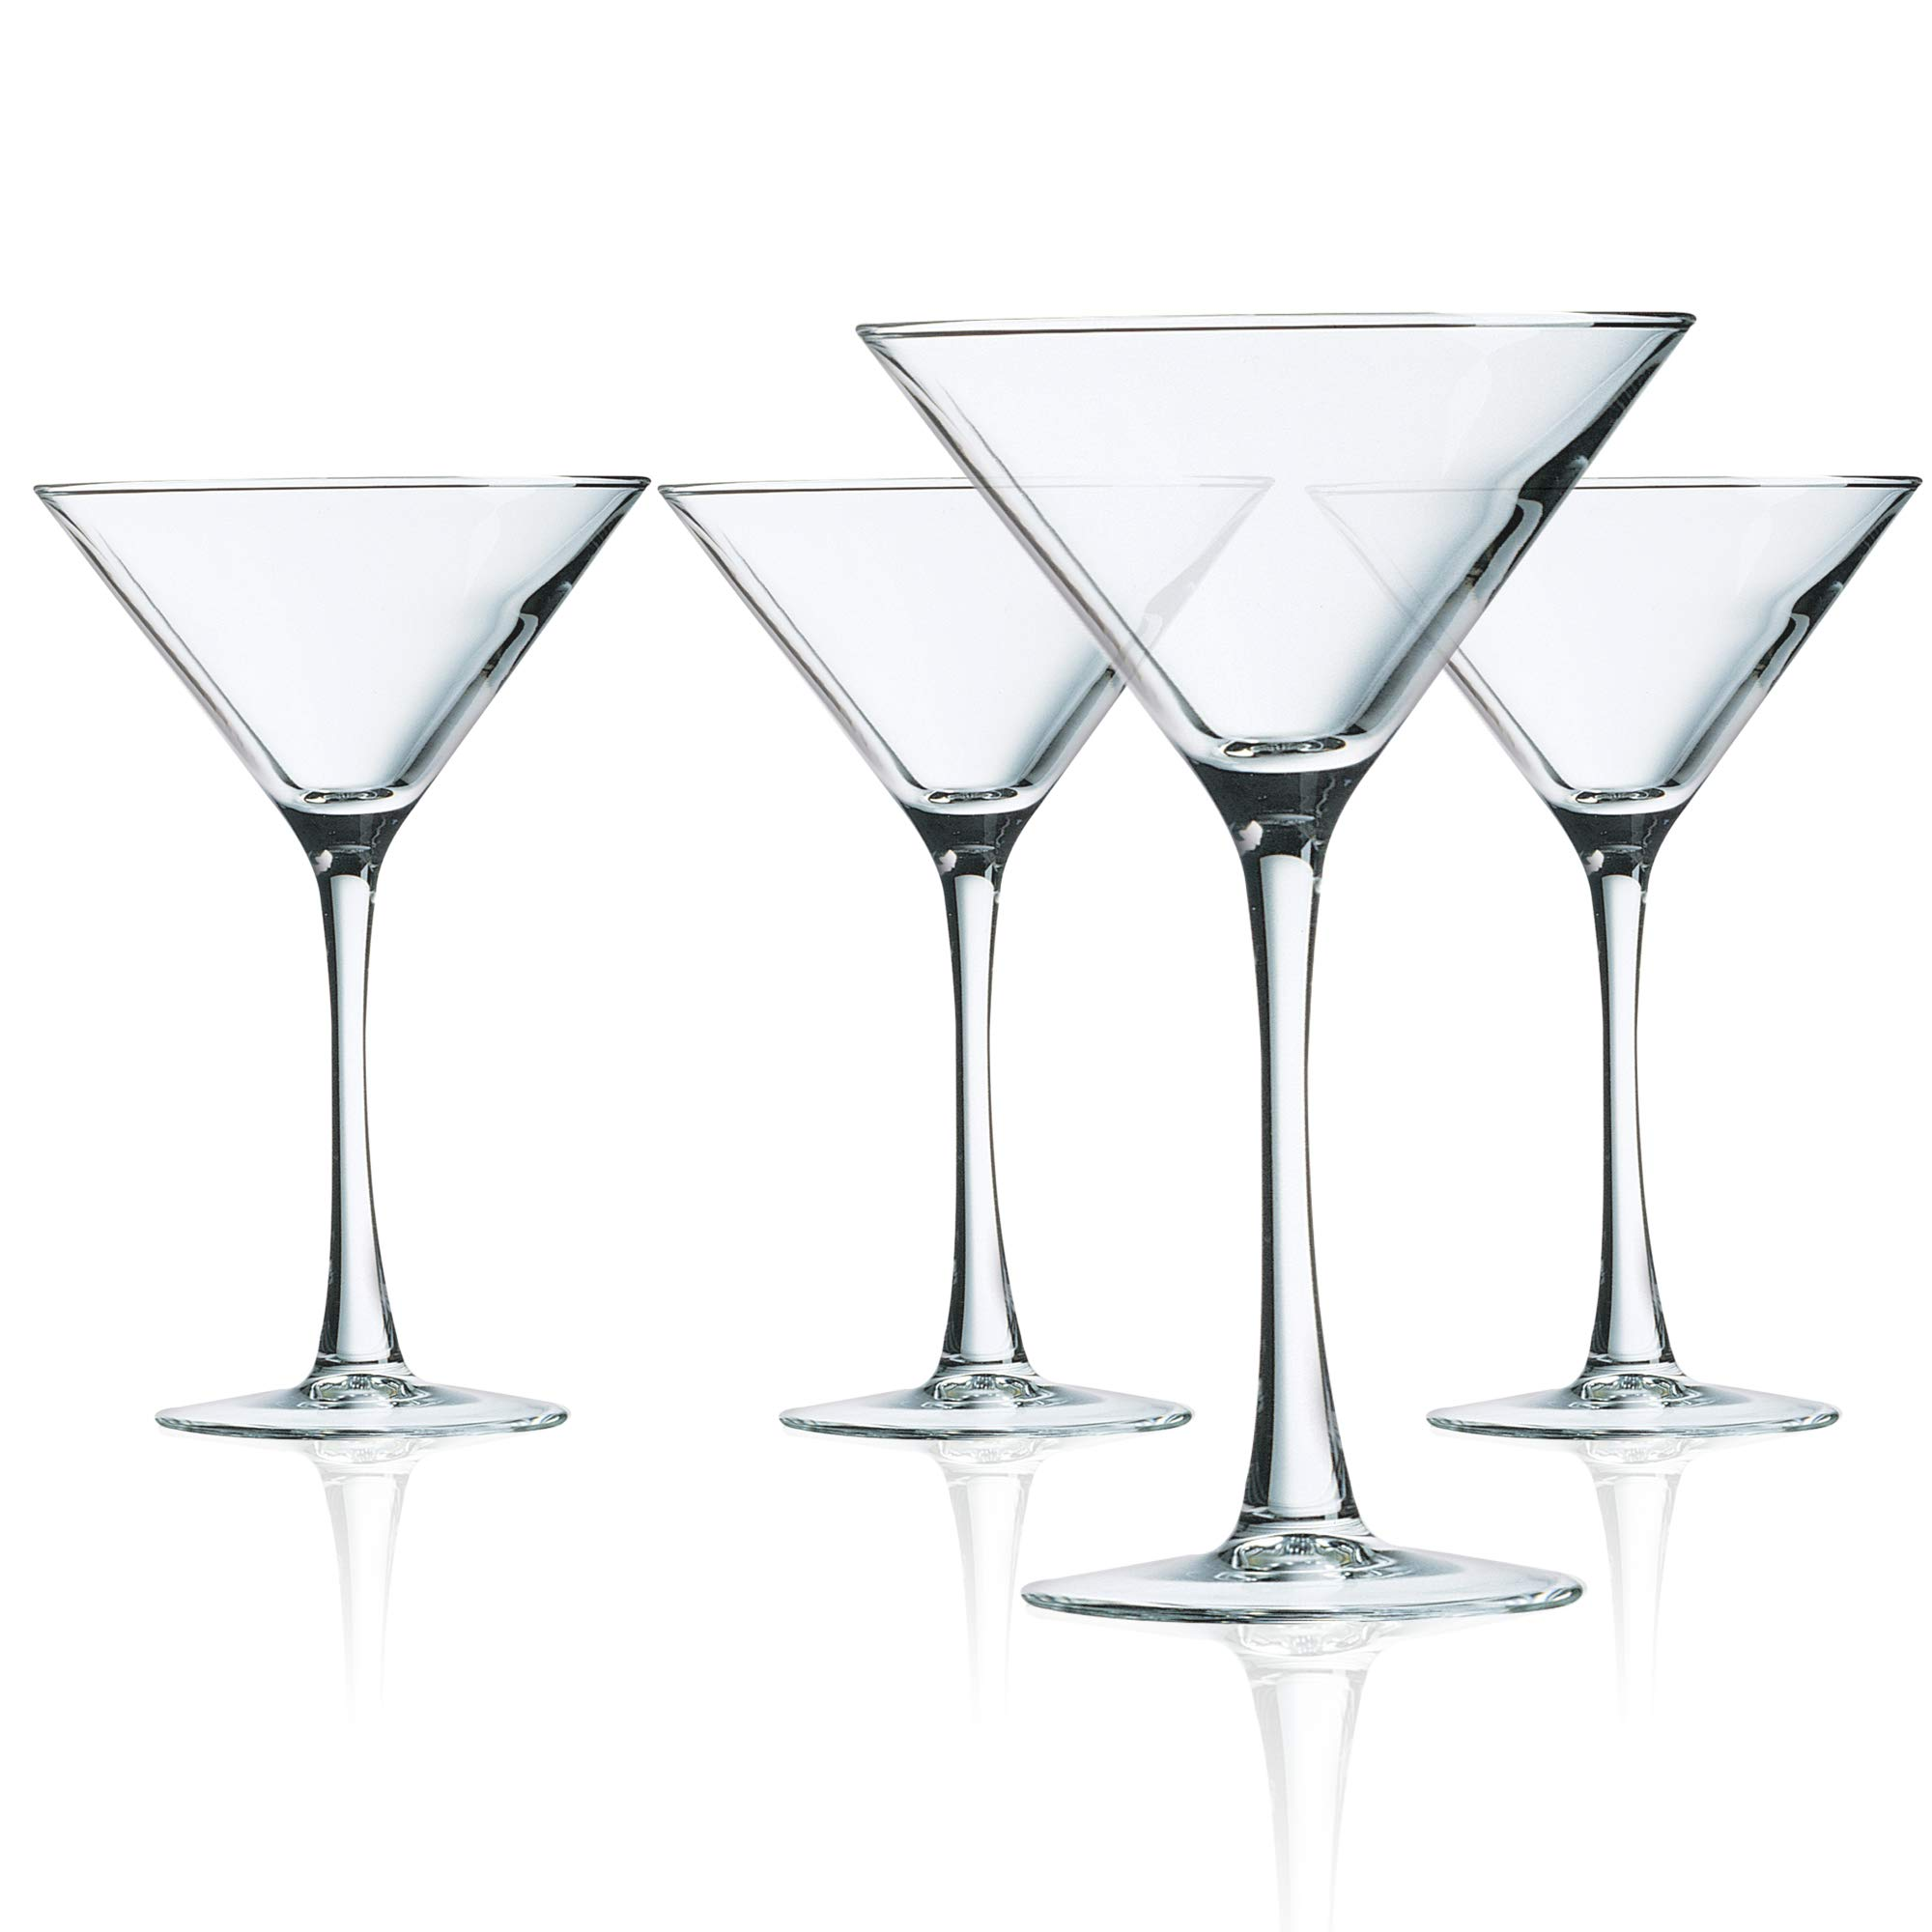 Luminarc N7340 Cachet 10 Ounce Martini Glass, Set of 4, Clear